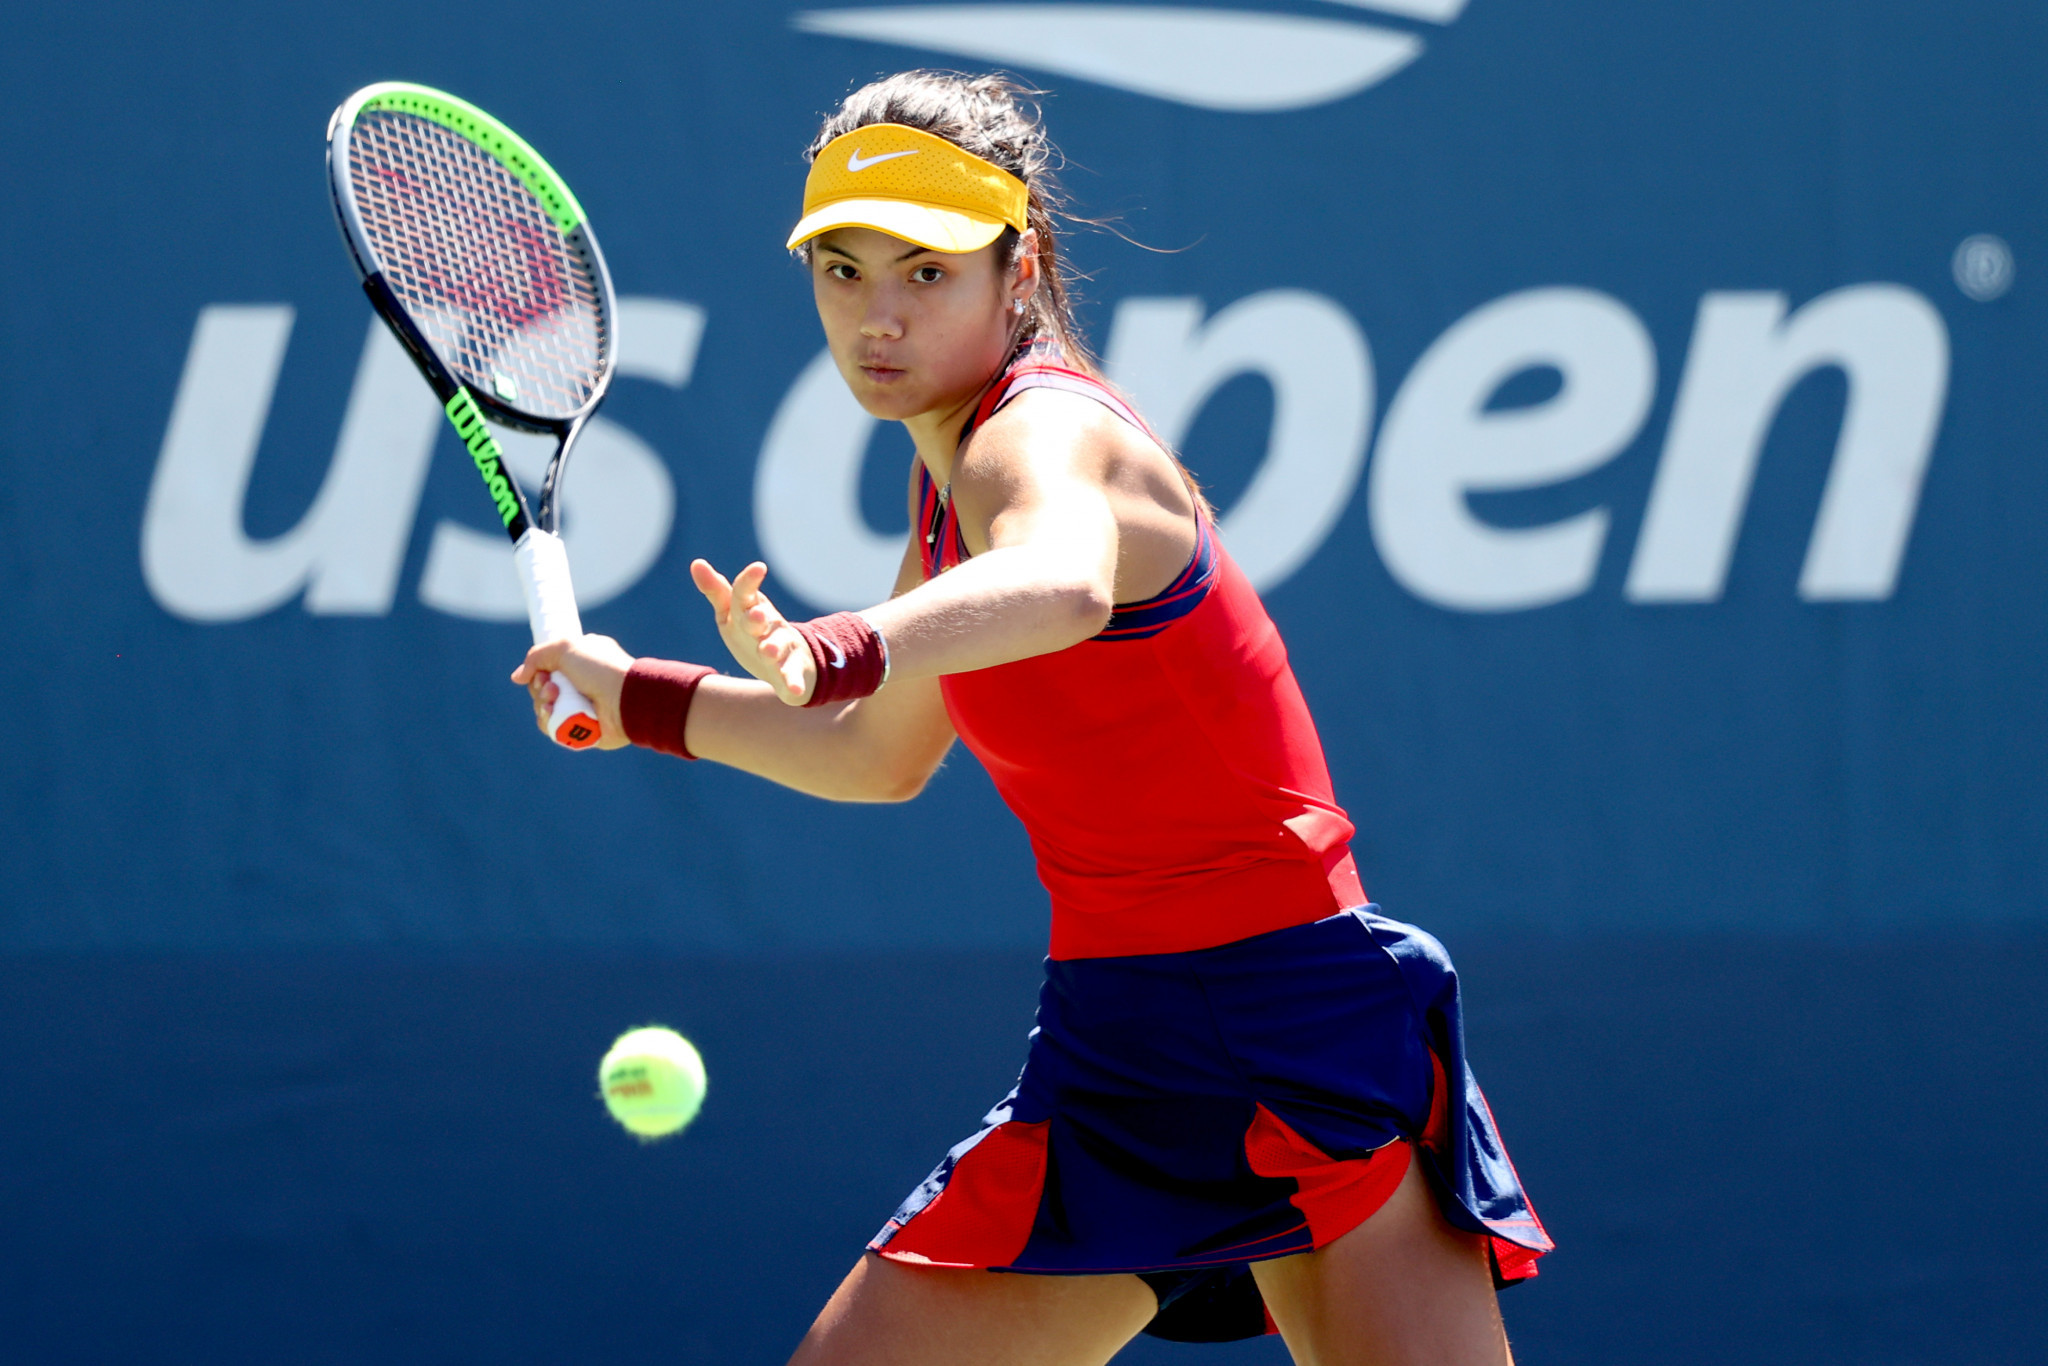 Raducanu rides again, joining Barty, Kerber and Bencic with straight-sets second-round wins